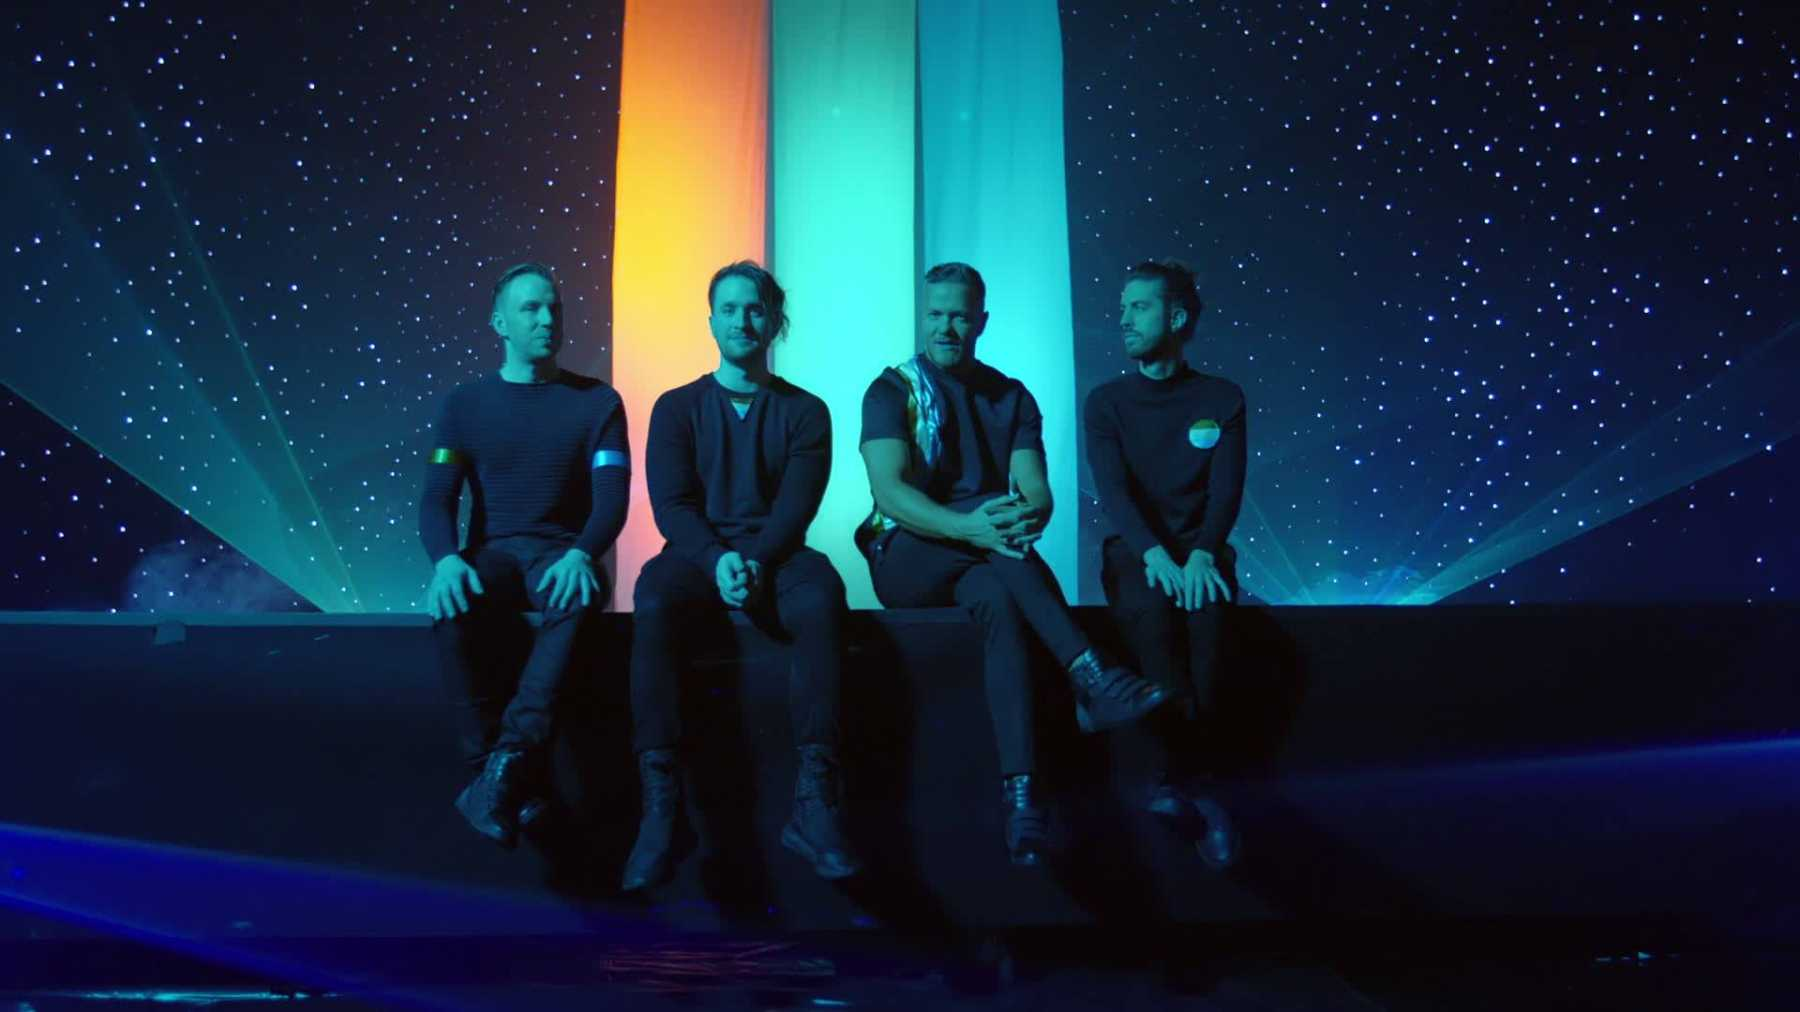 imagine dragons evolve an indie rock disappointment